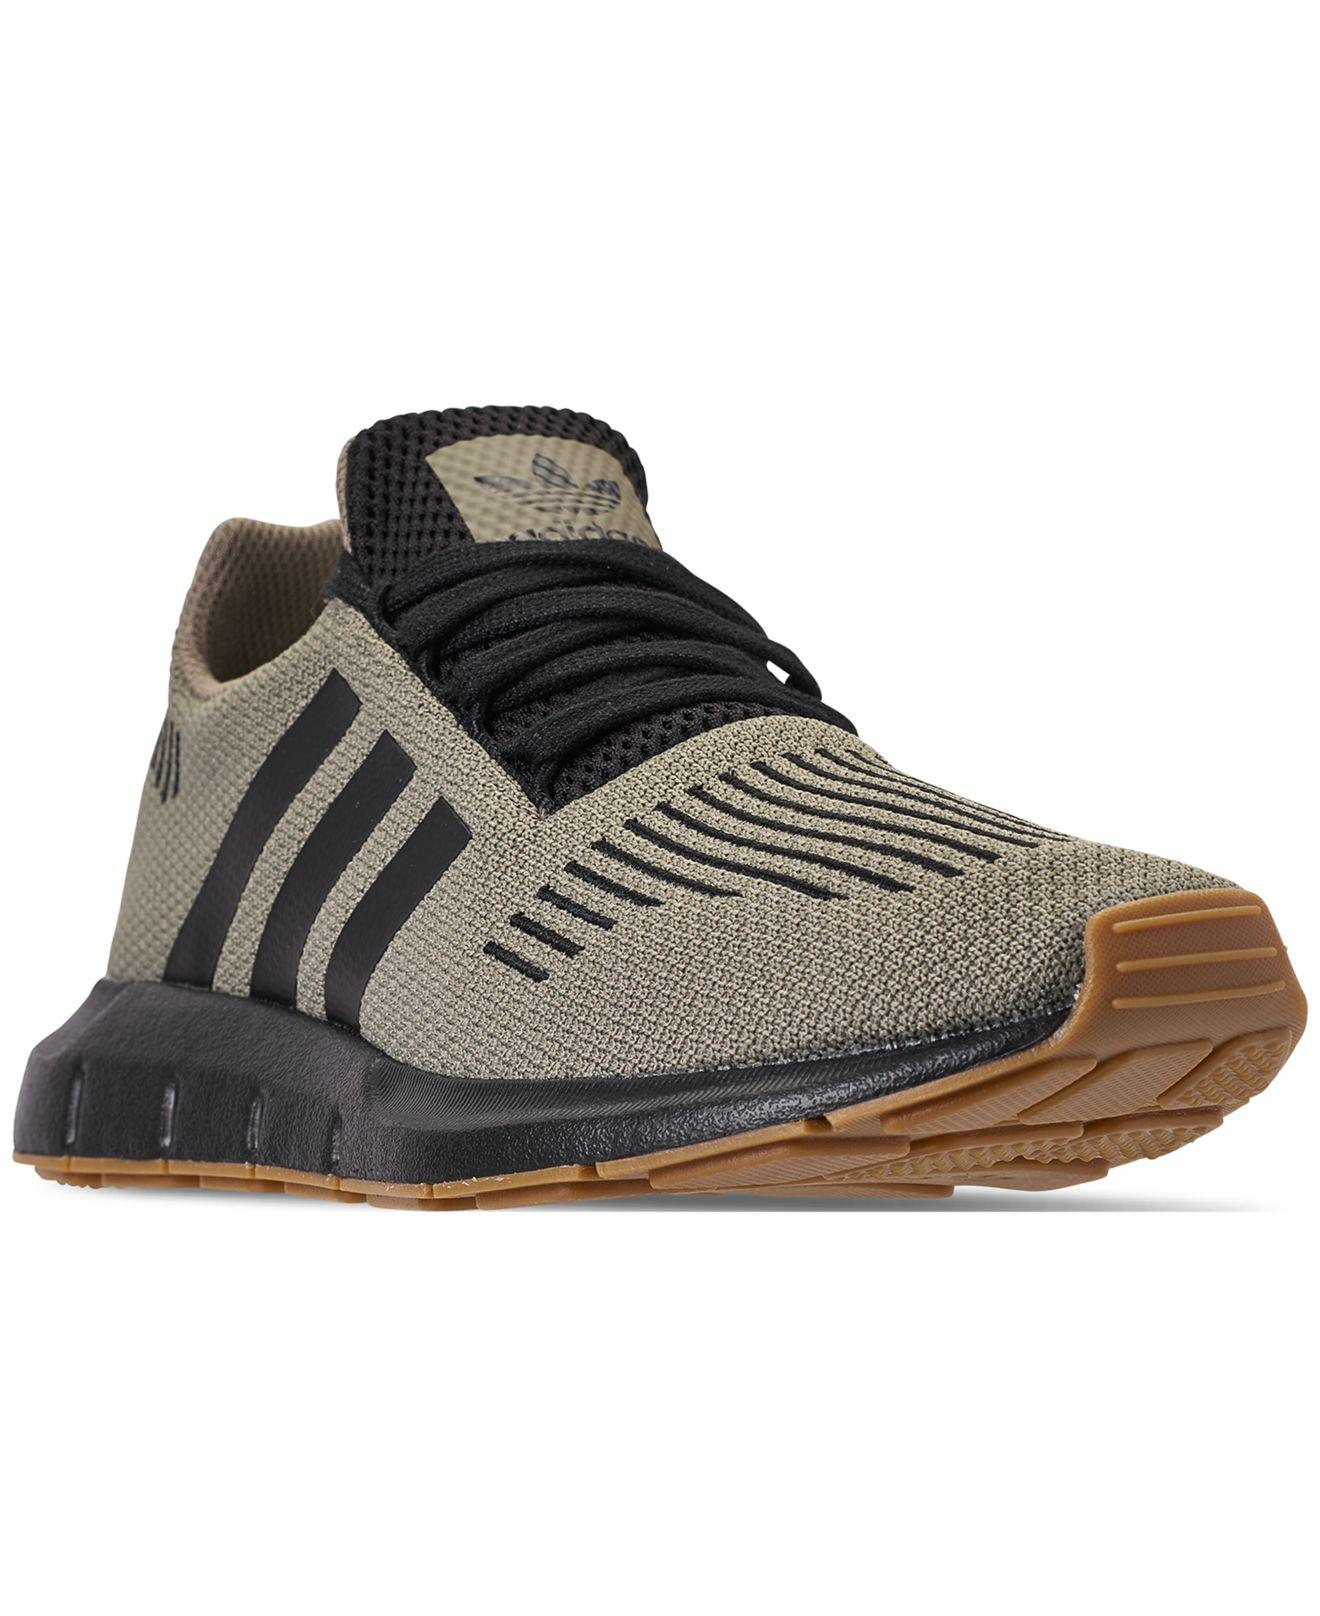 d6d7c21bd Lyst - adidas Swift Run Casual Sneakers From Finish Line in Black ...